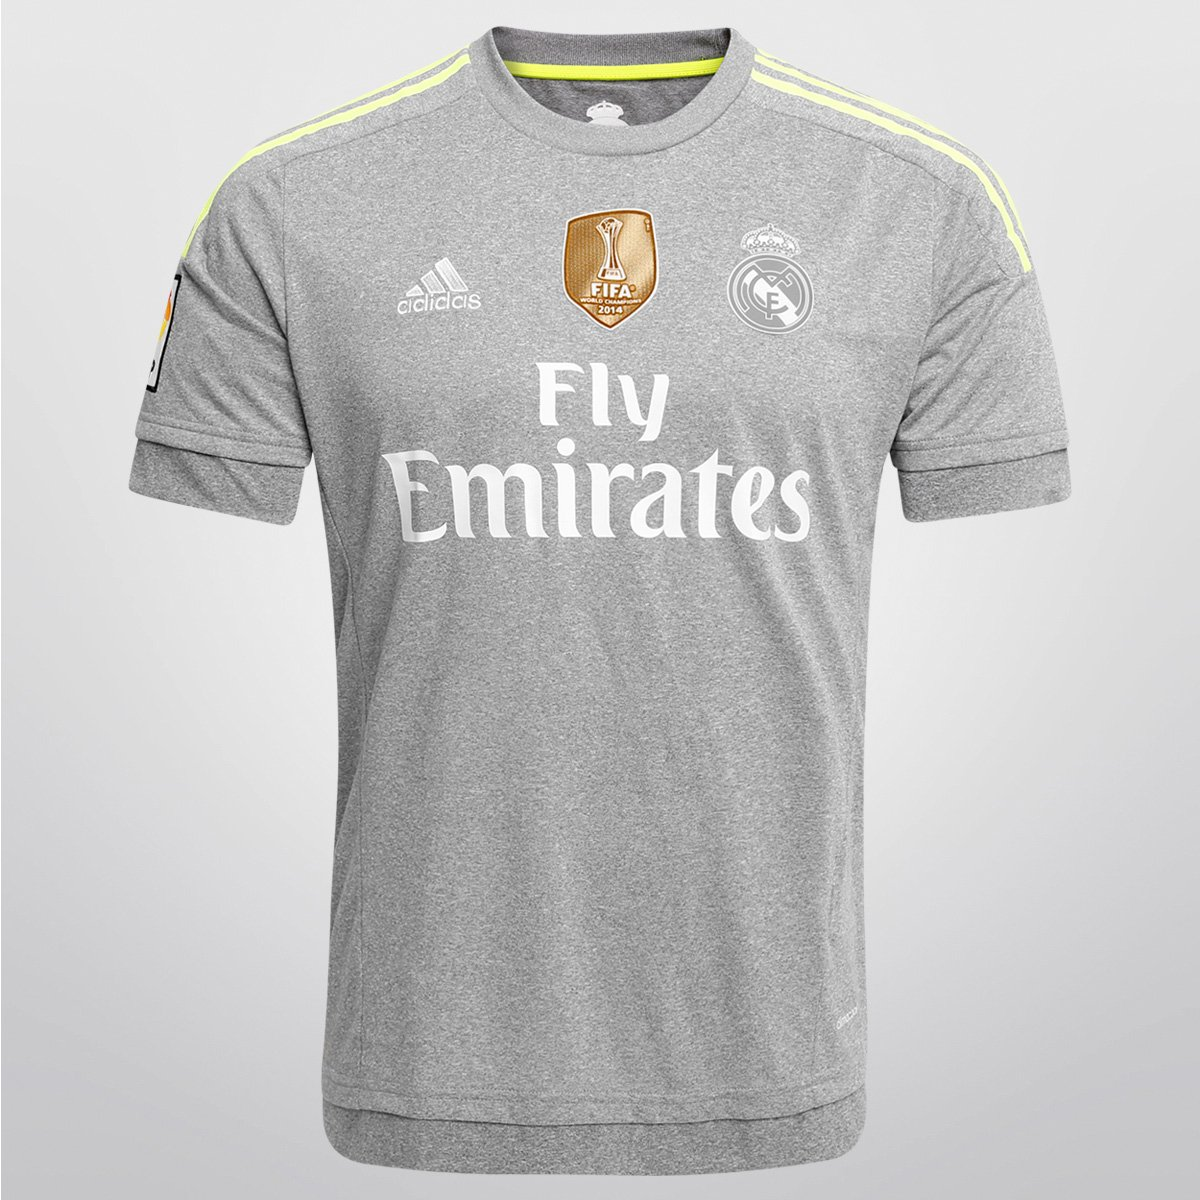 dec45def08310 Camisa Adidas Real Madrid Away 15 16 s nº - Patch Mundial - Compre Agora